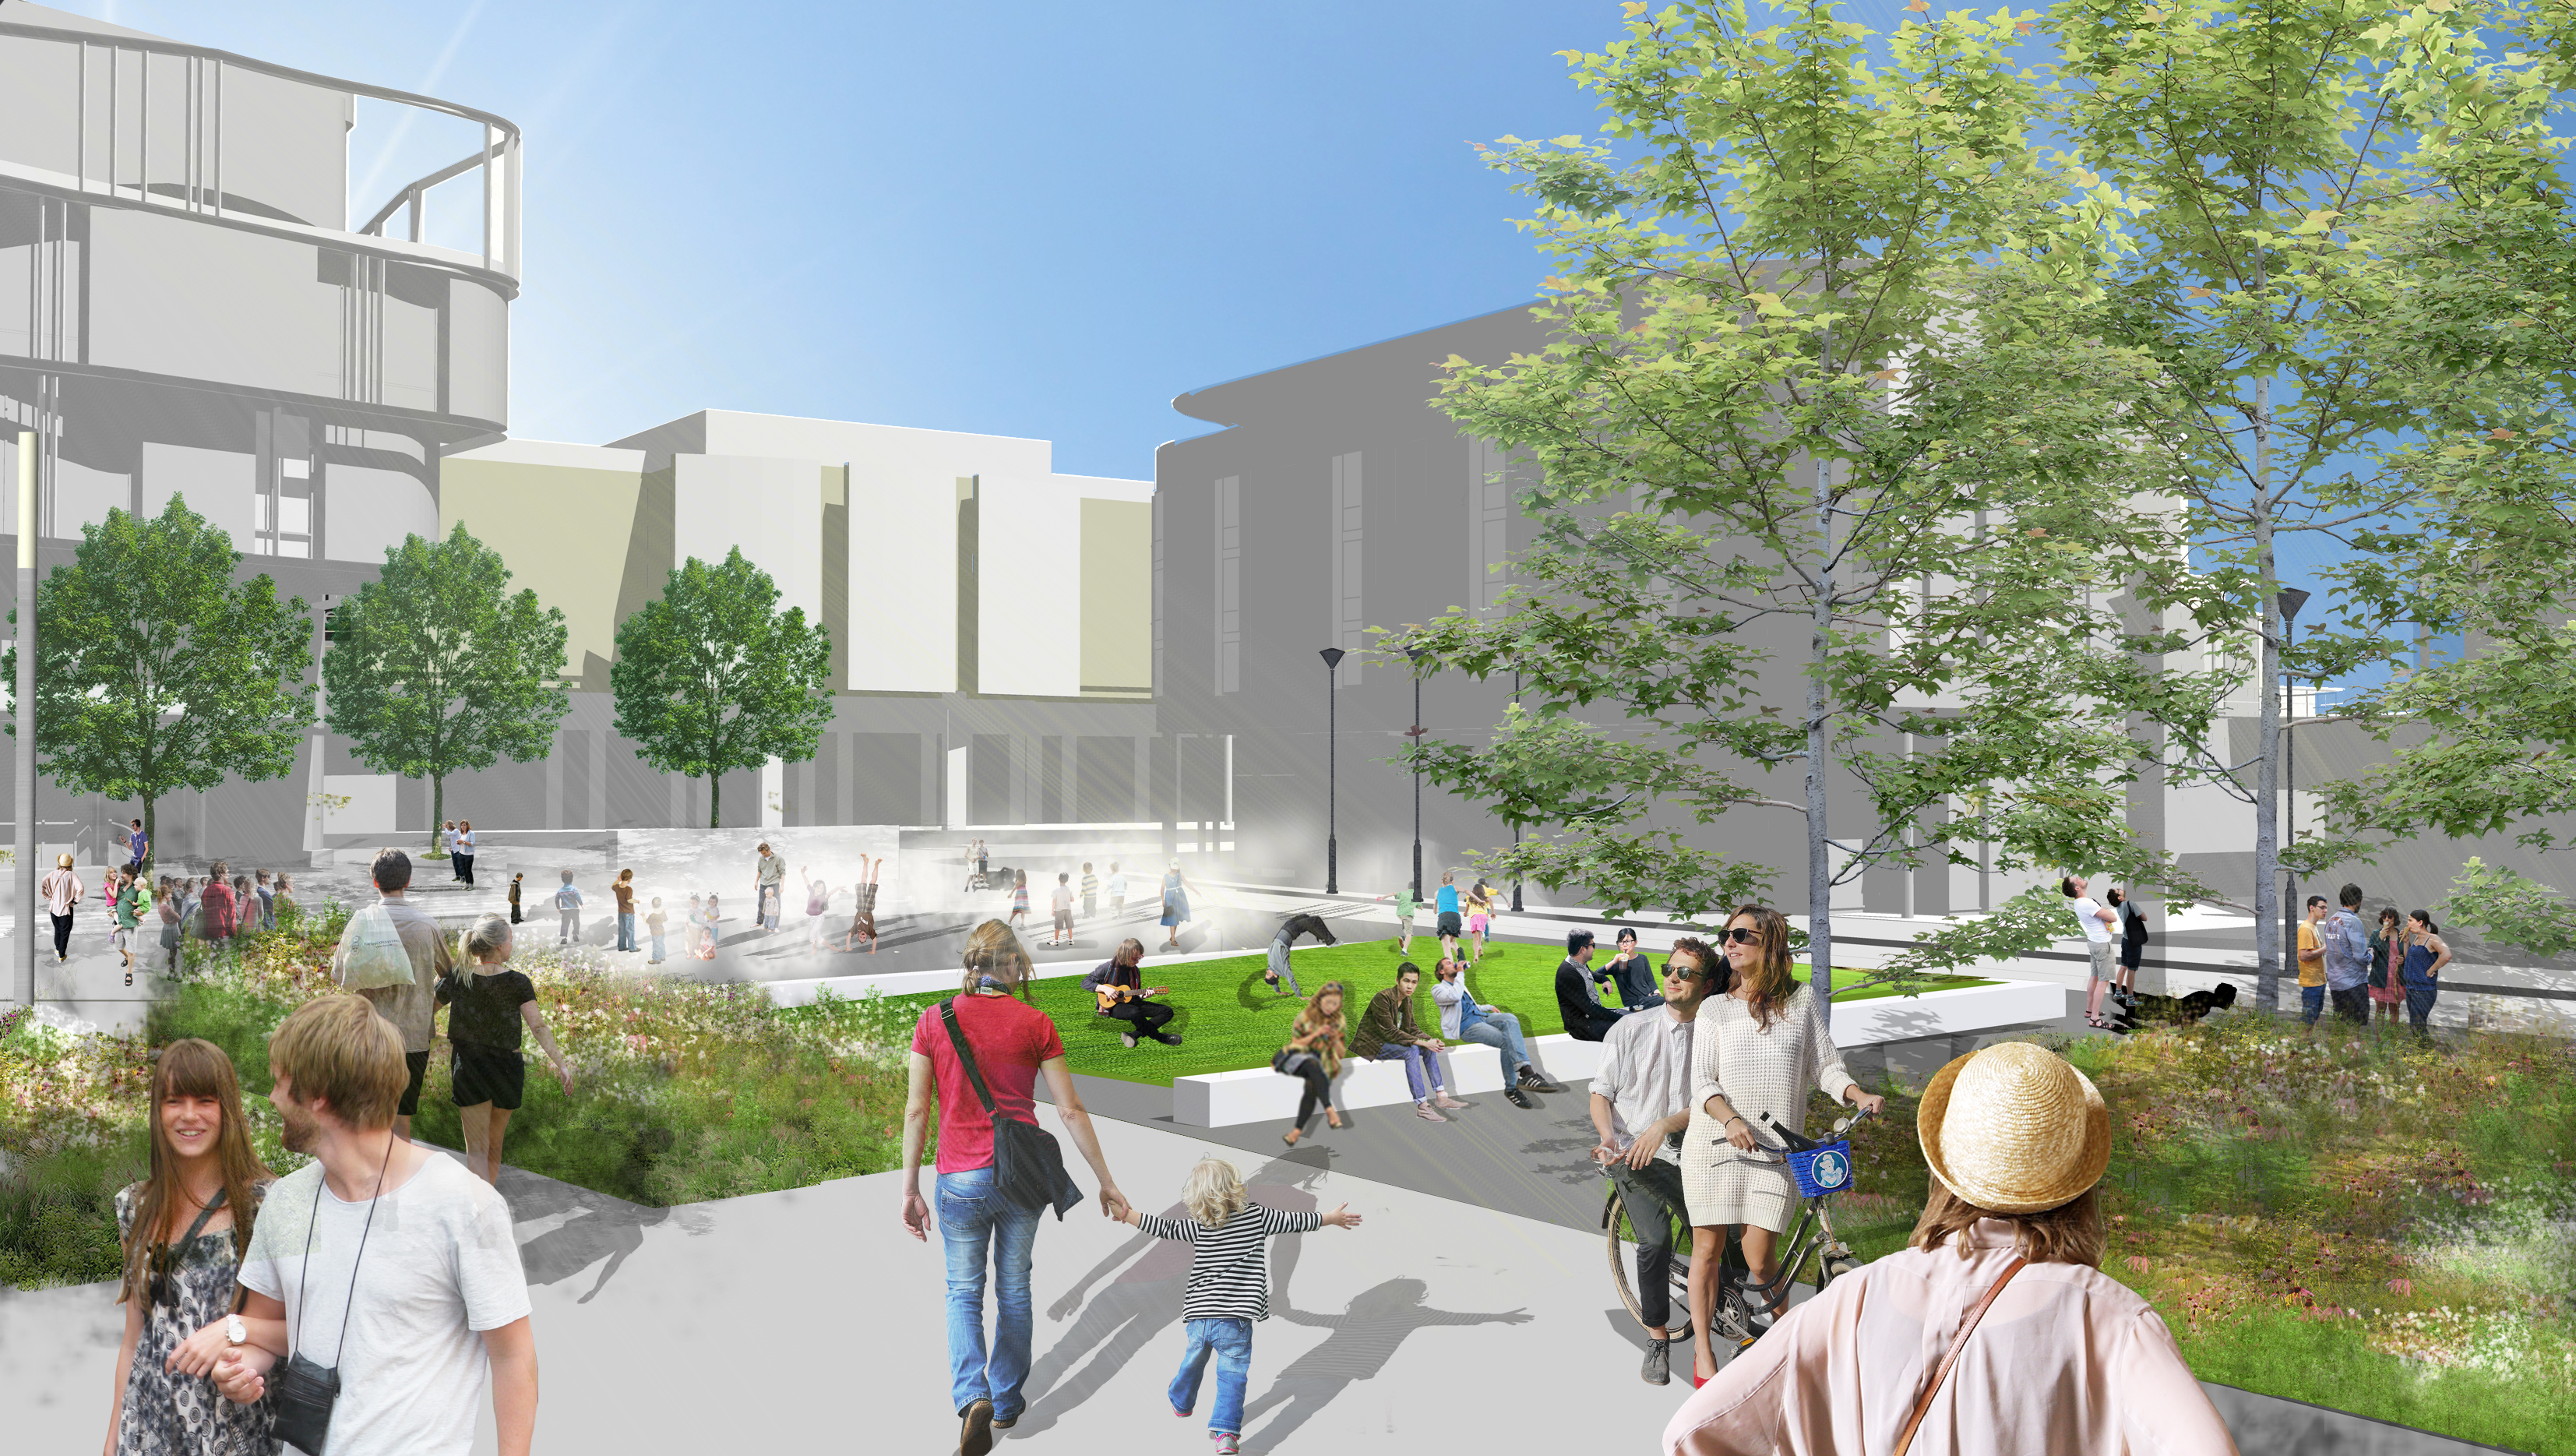 Detailed designs for new Southwater Square revealed